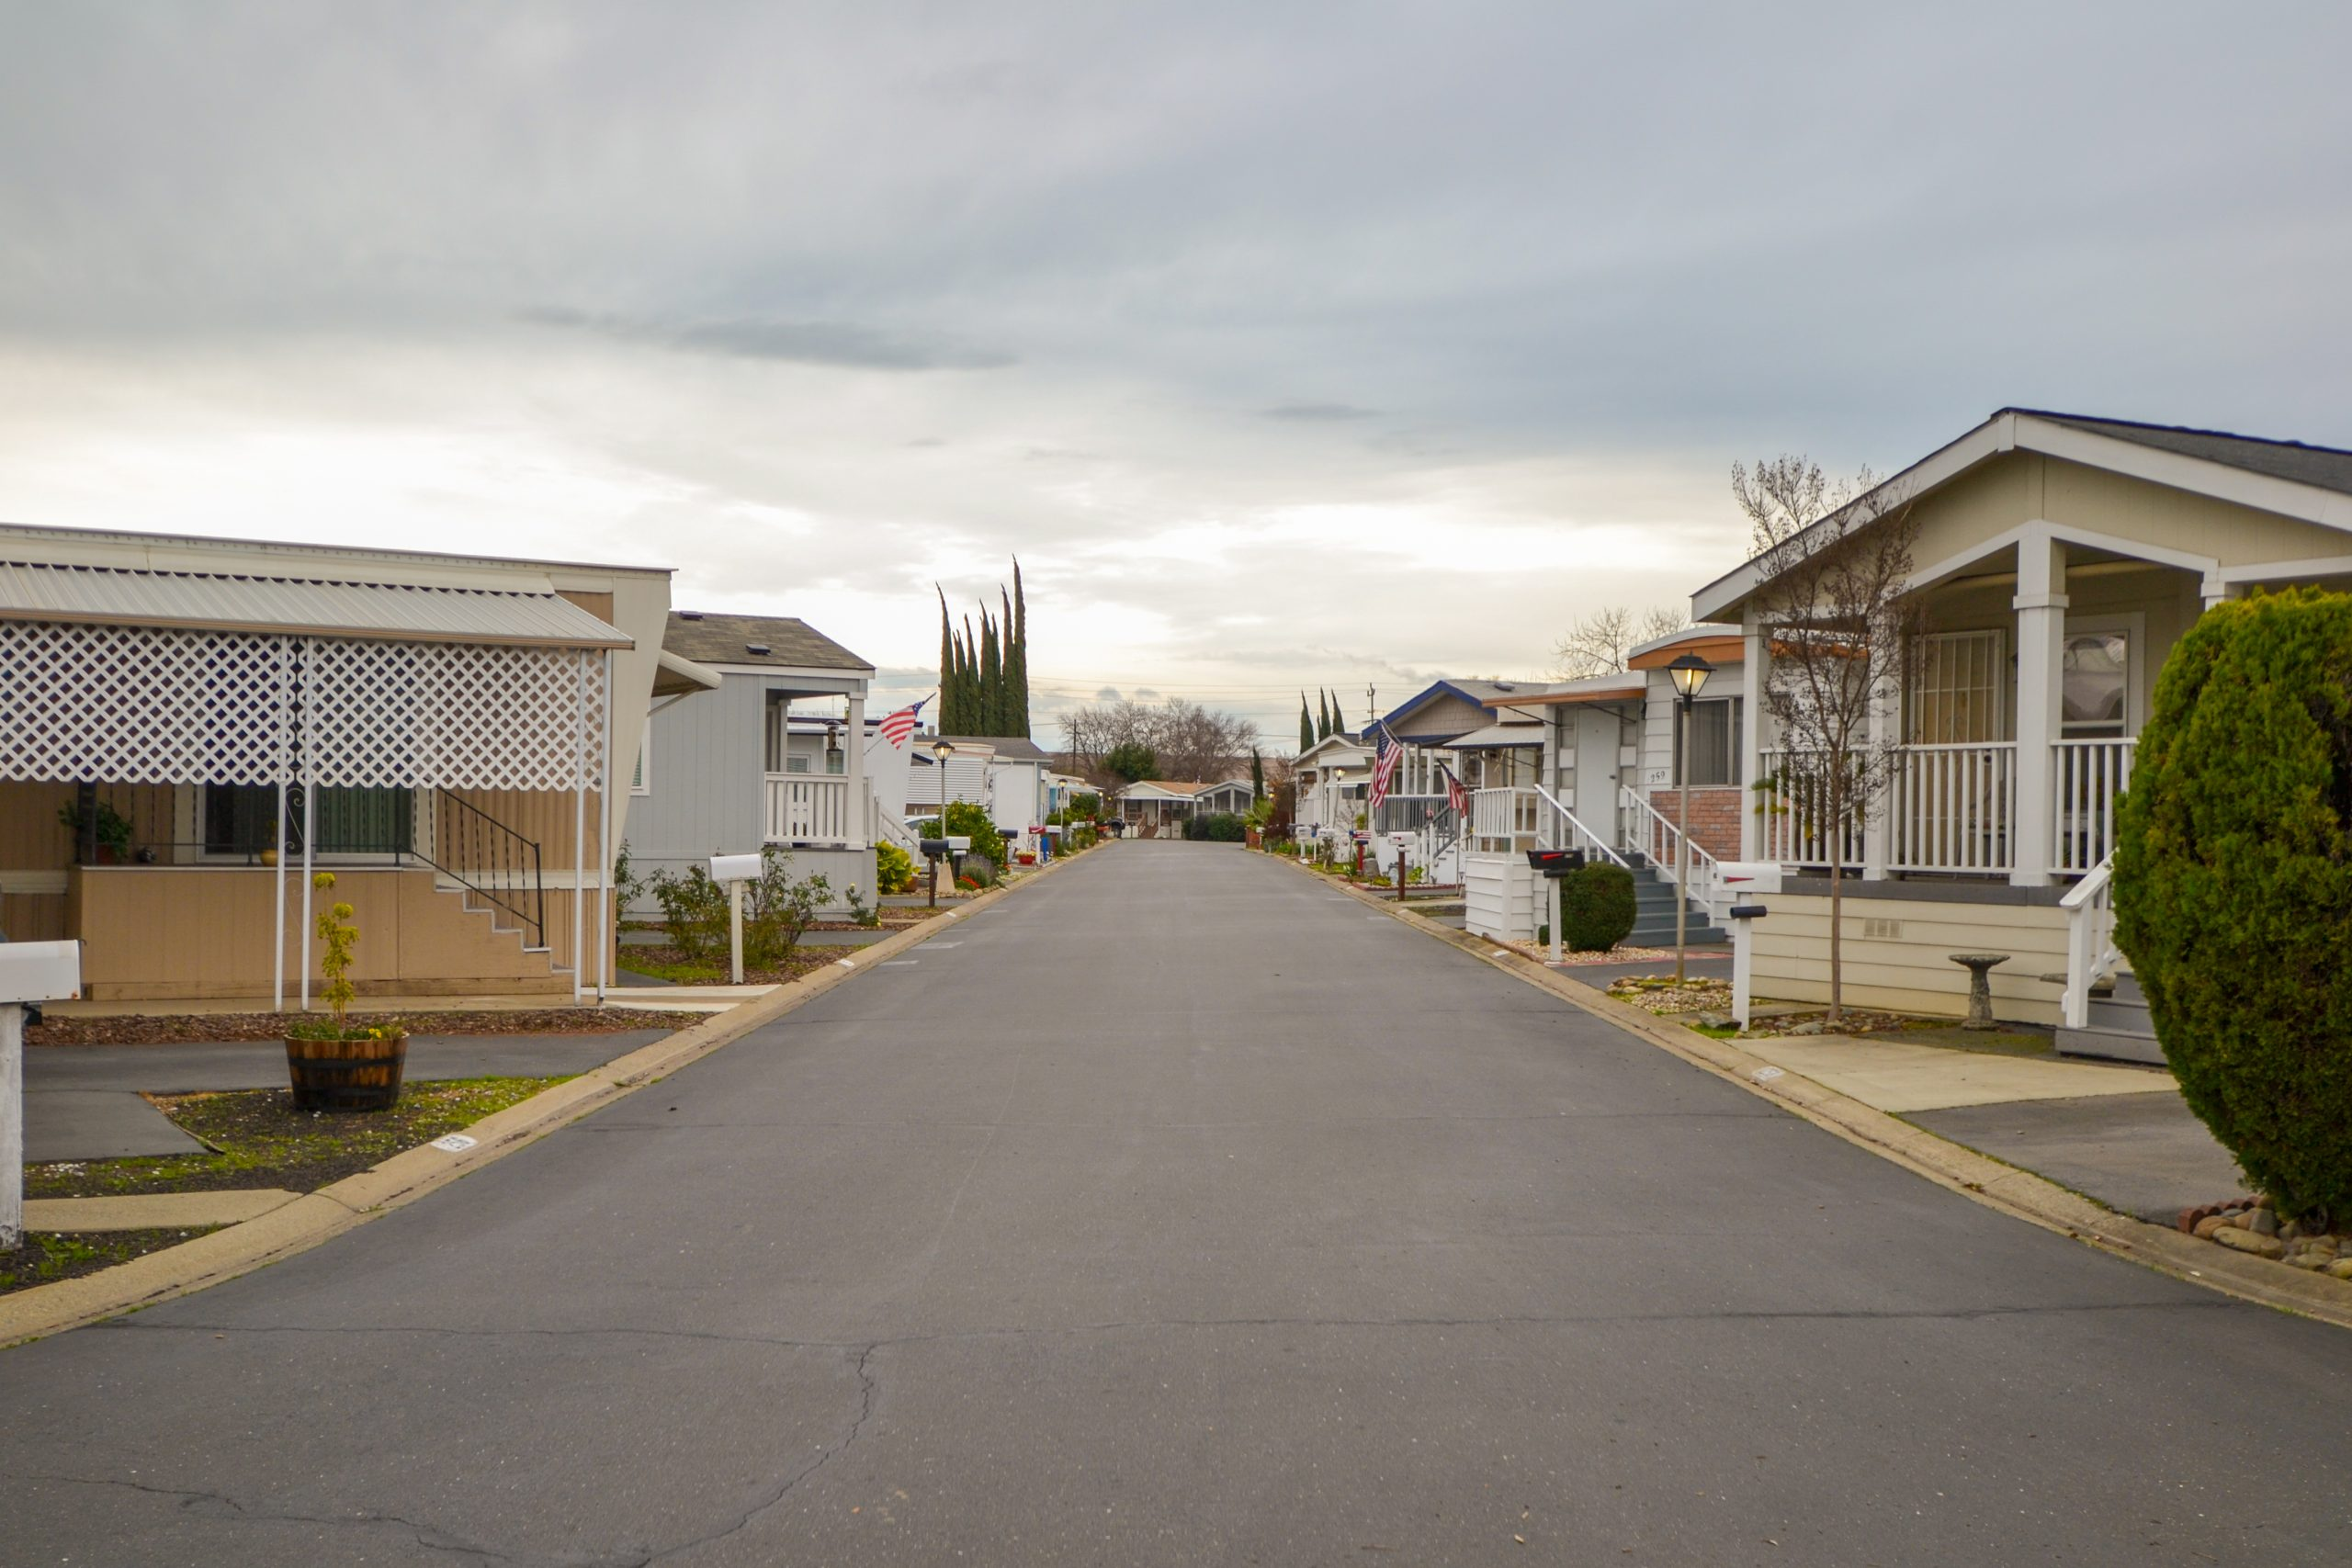 mobile home community row of houses along main road